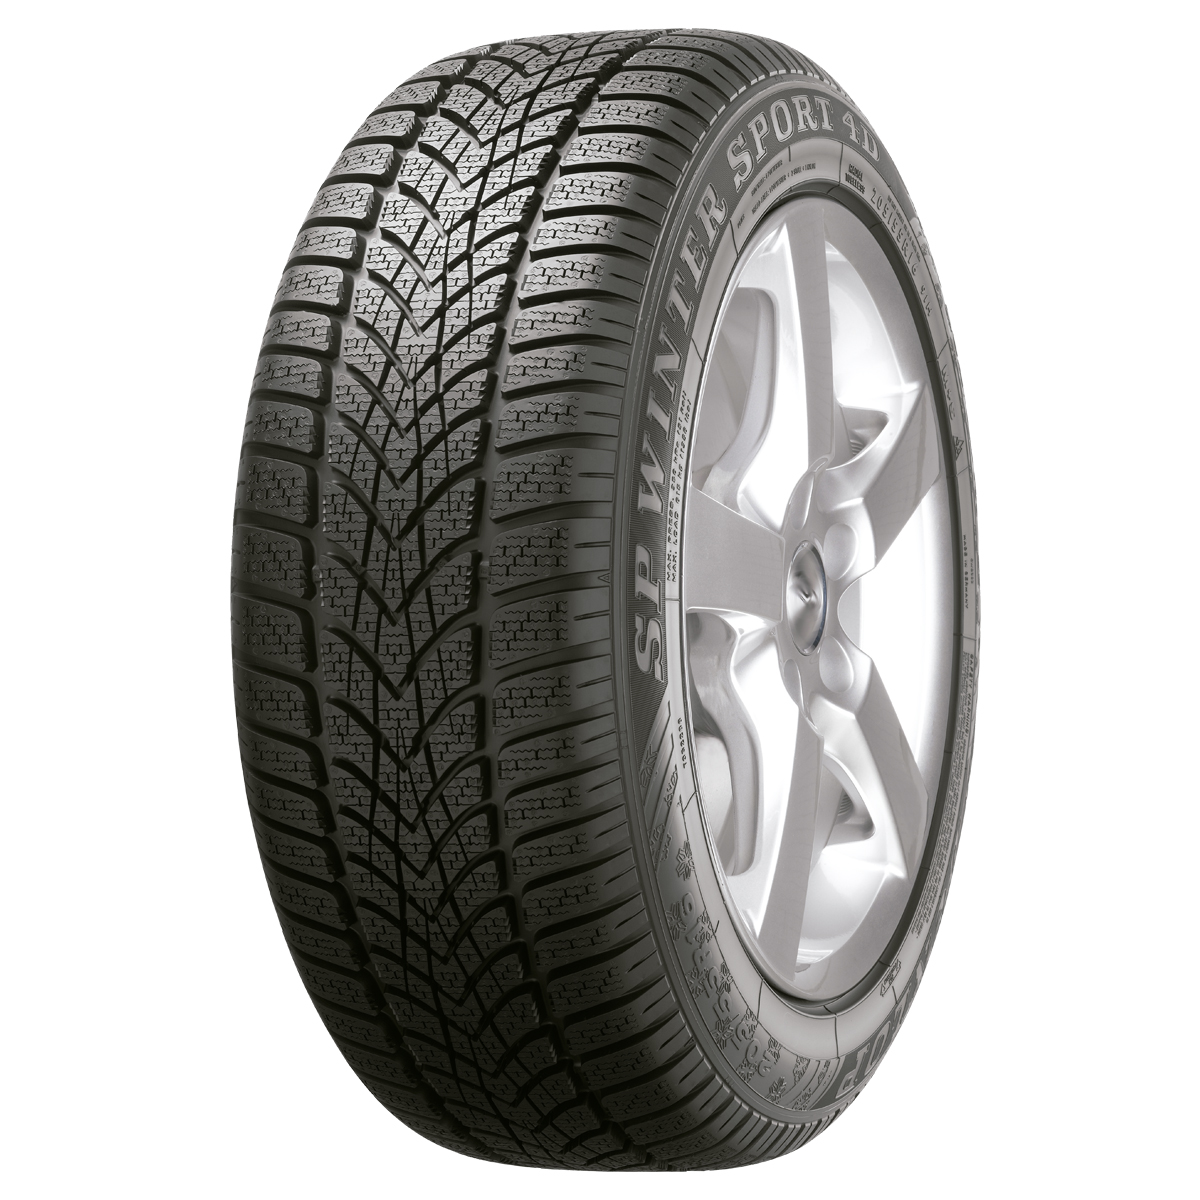 Dunlop SP Winter Sport 4D tubeless   245/45 R17